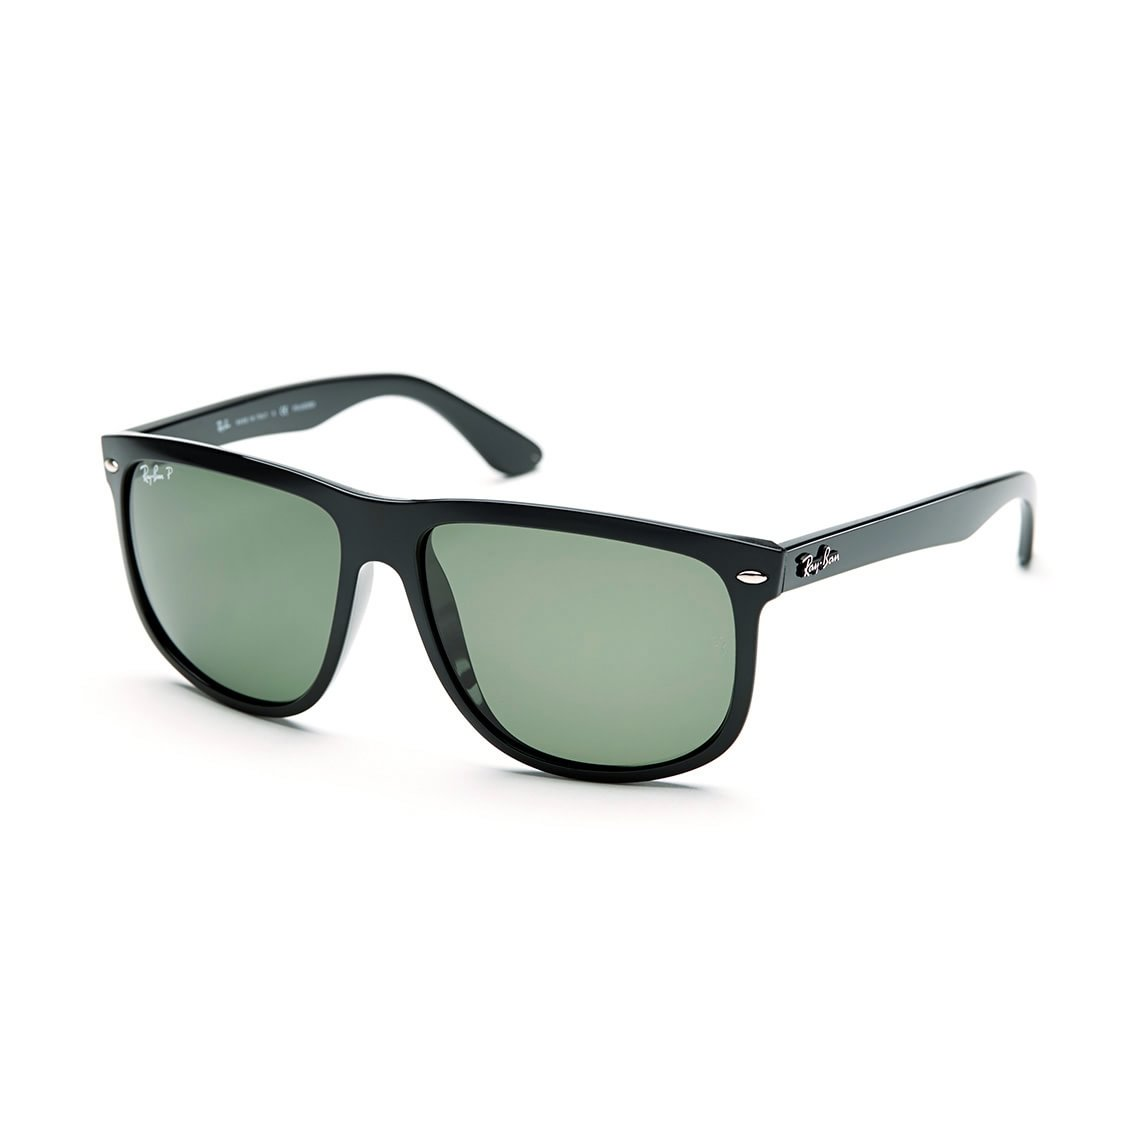 4c757df44 Ray-Ban RB4147 601/58 60